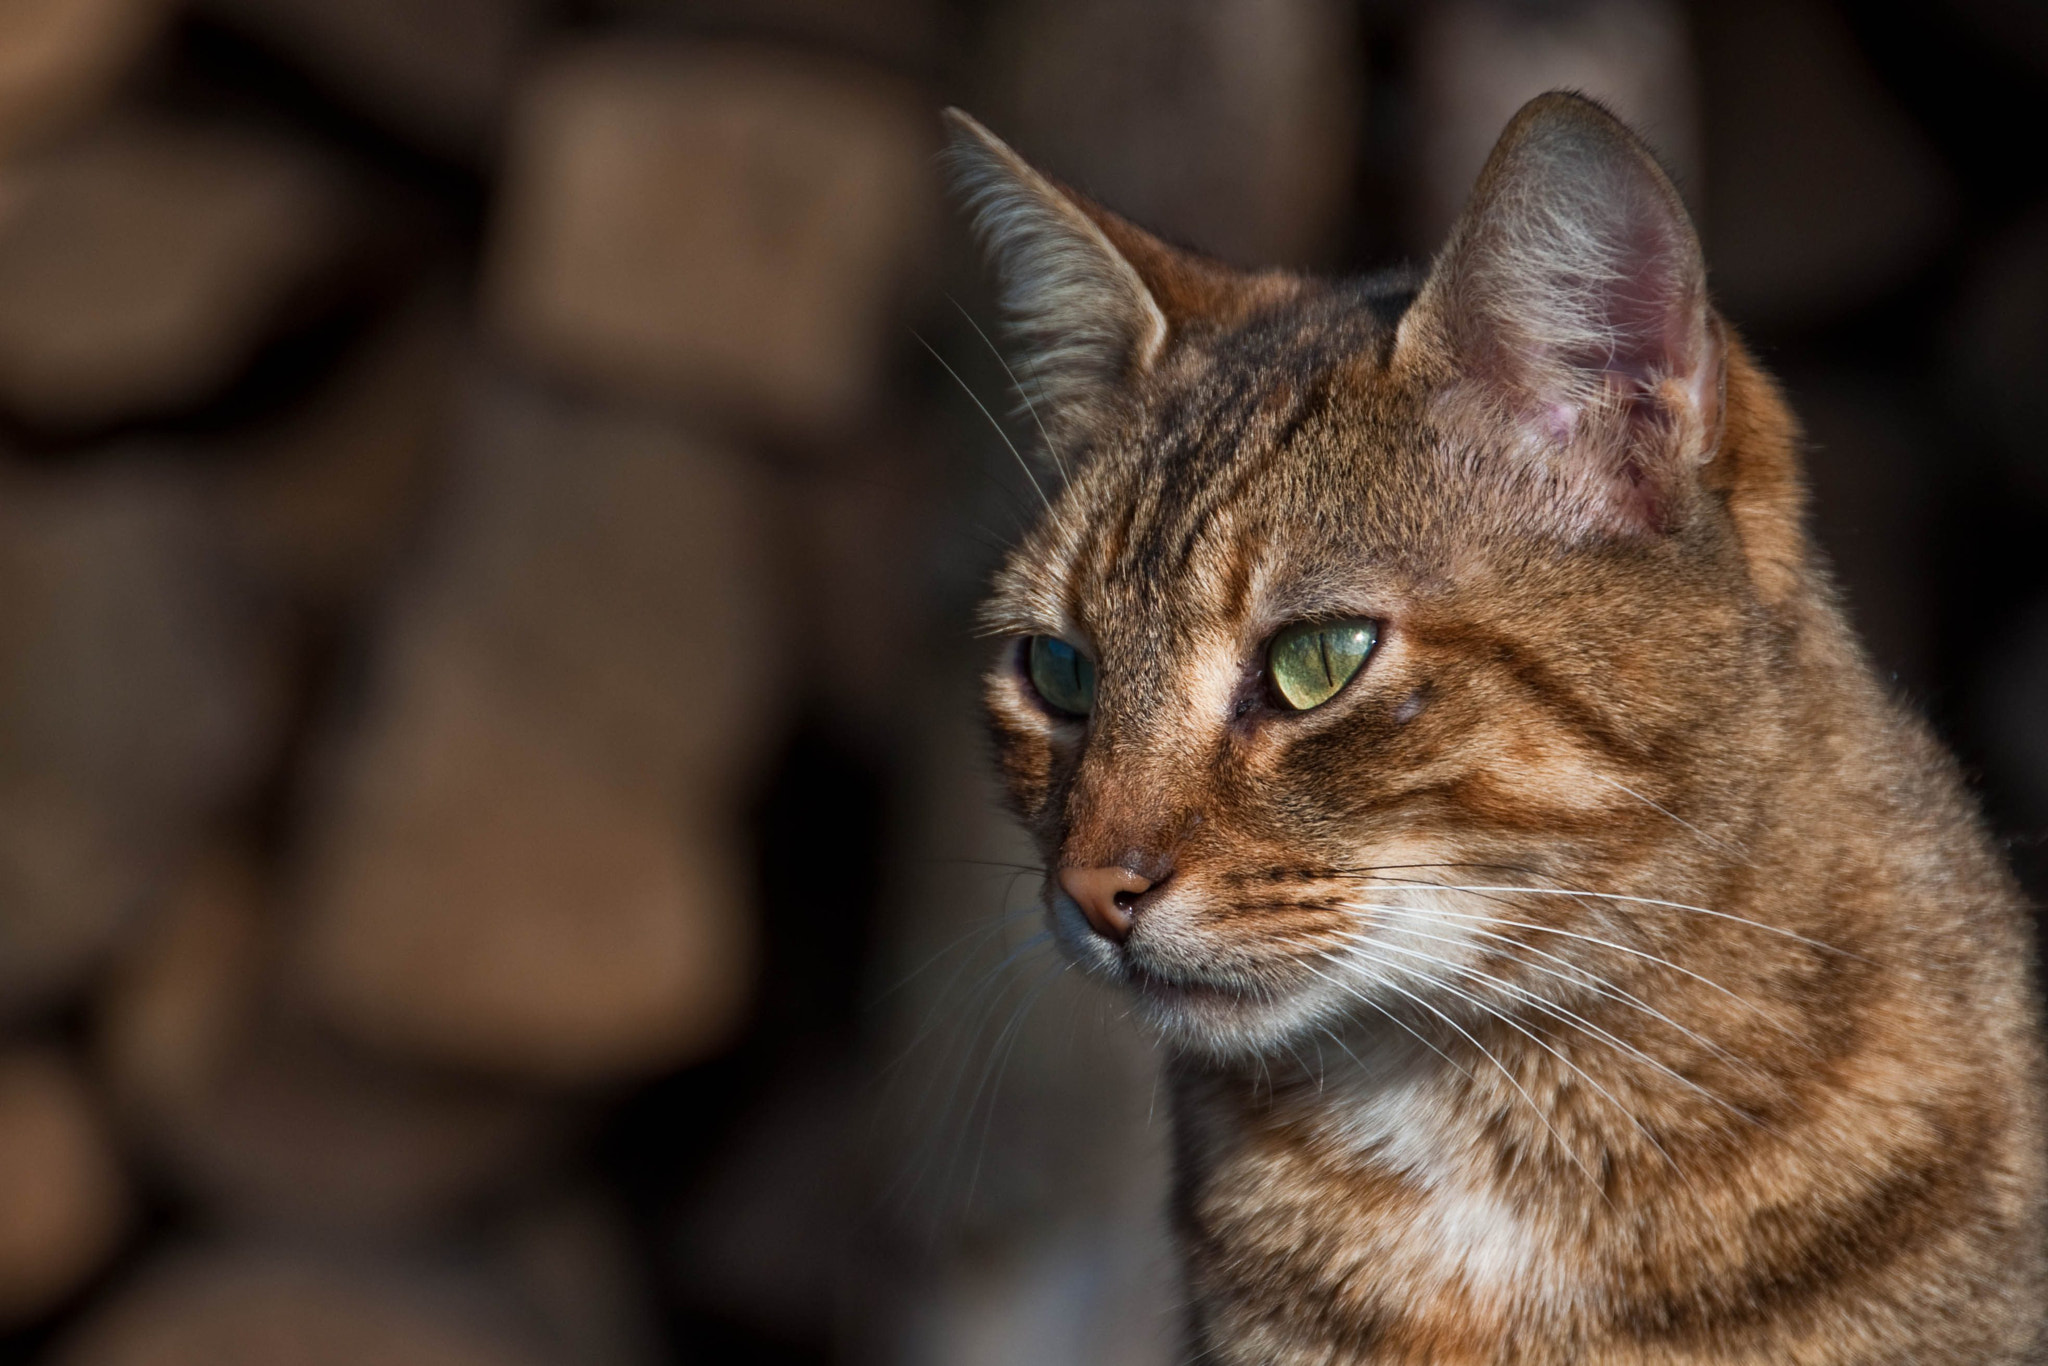 Photograph cat (05) by Vlado Ferencic on 500px